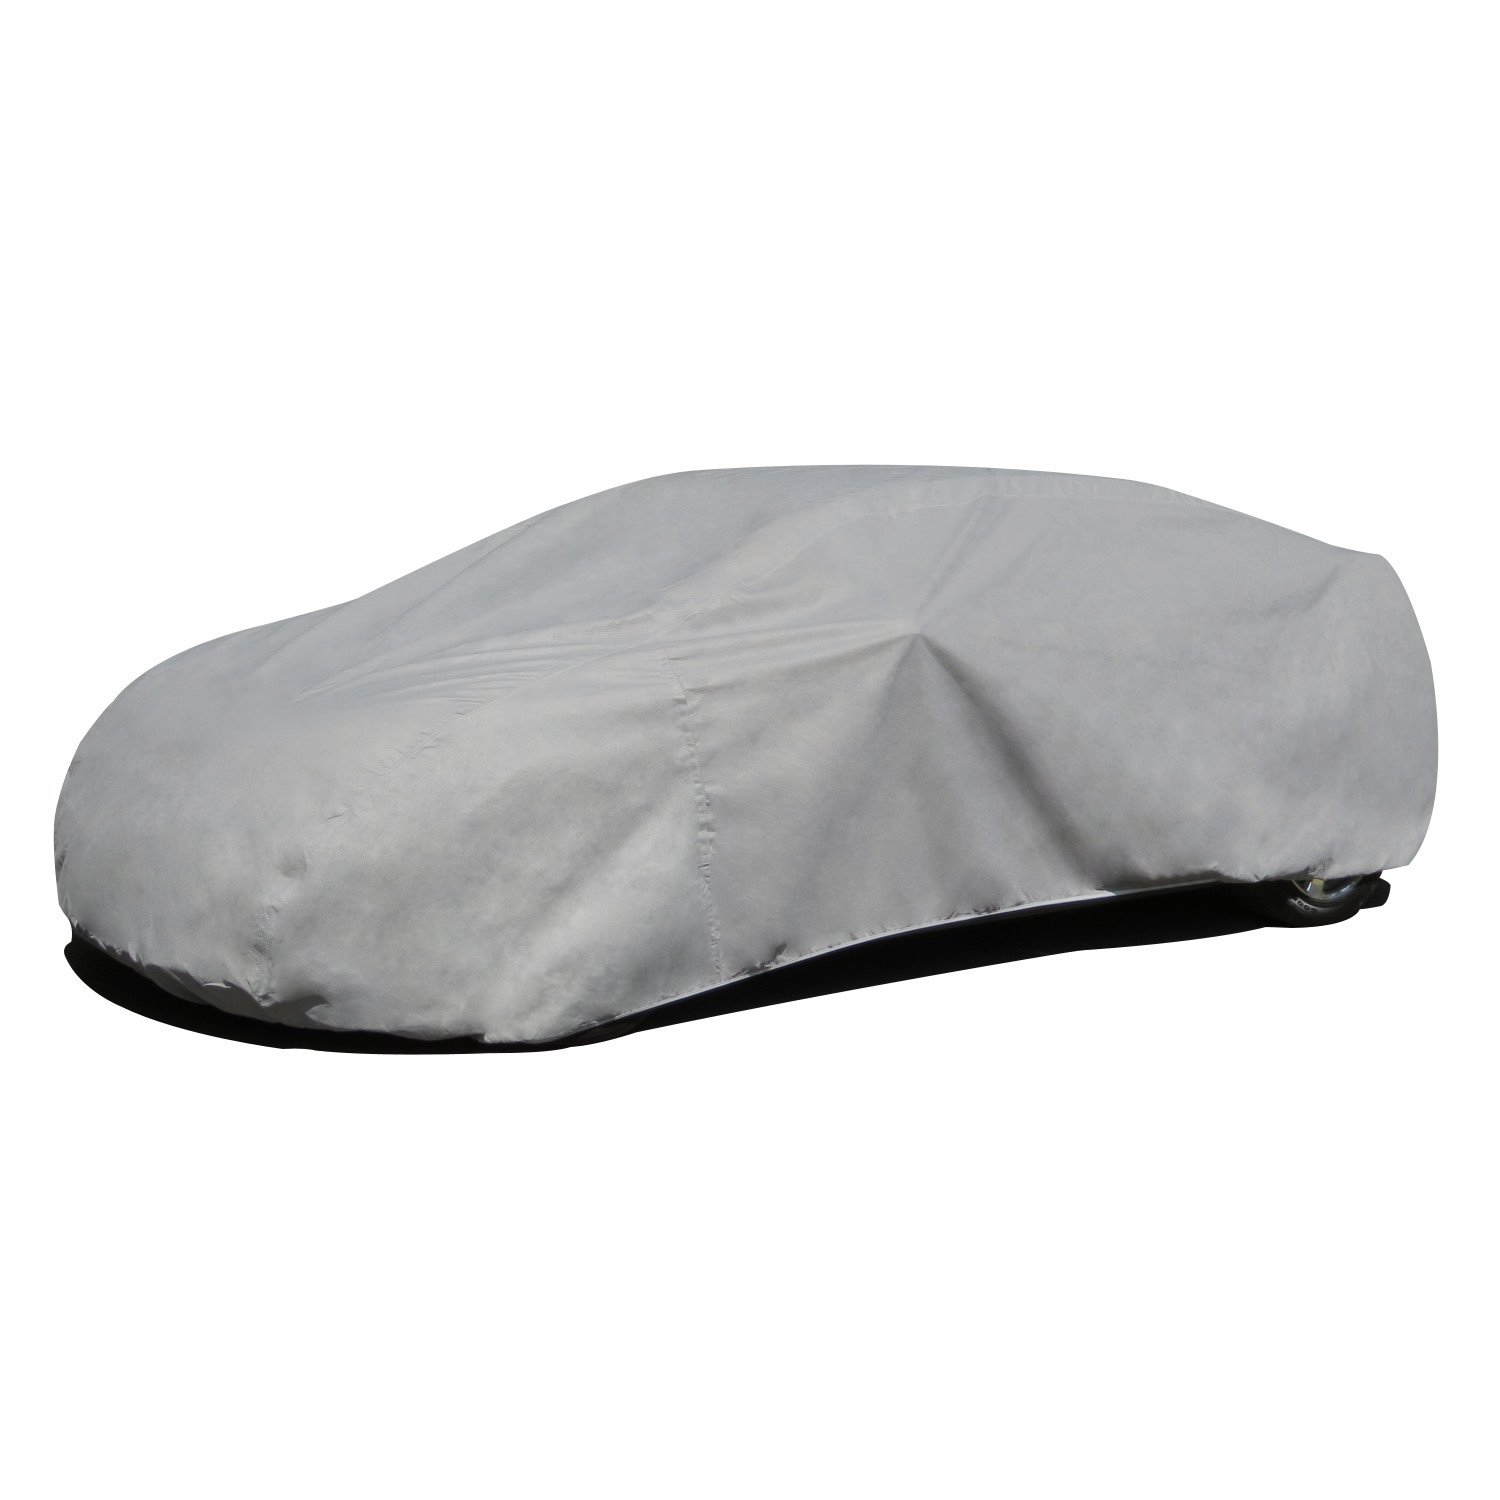 Budge Duro Car Cover Fits Sedans up to 170 inches, D-2 - (Polypropylene, Gray)